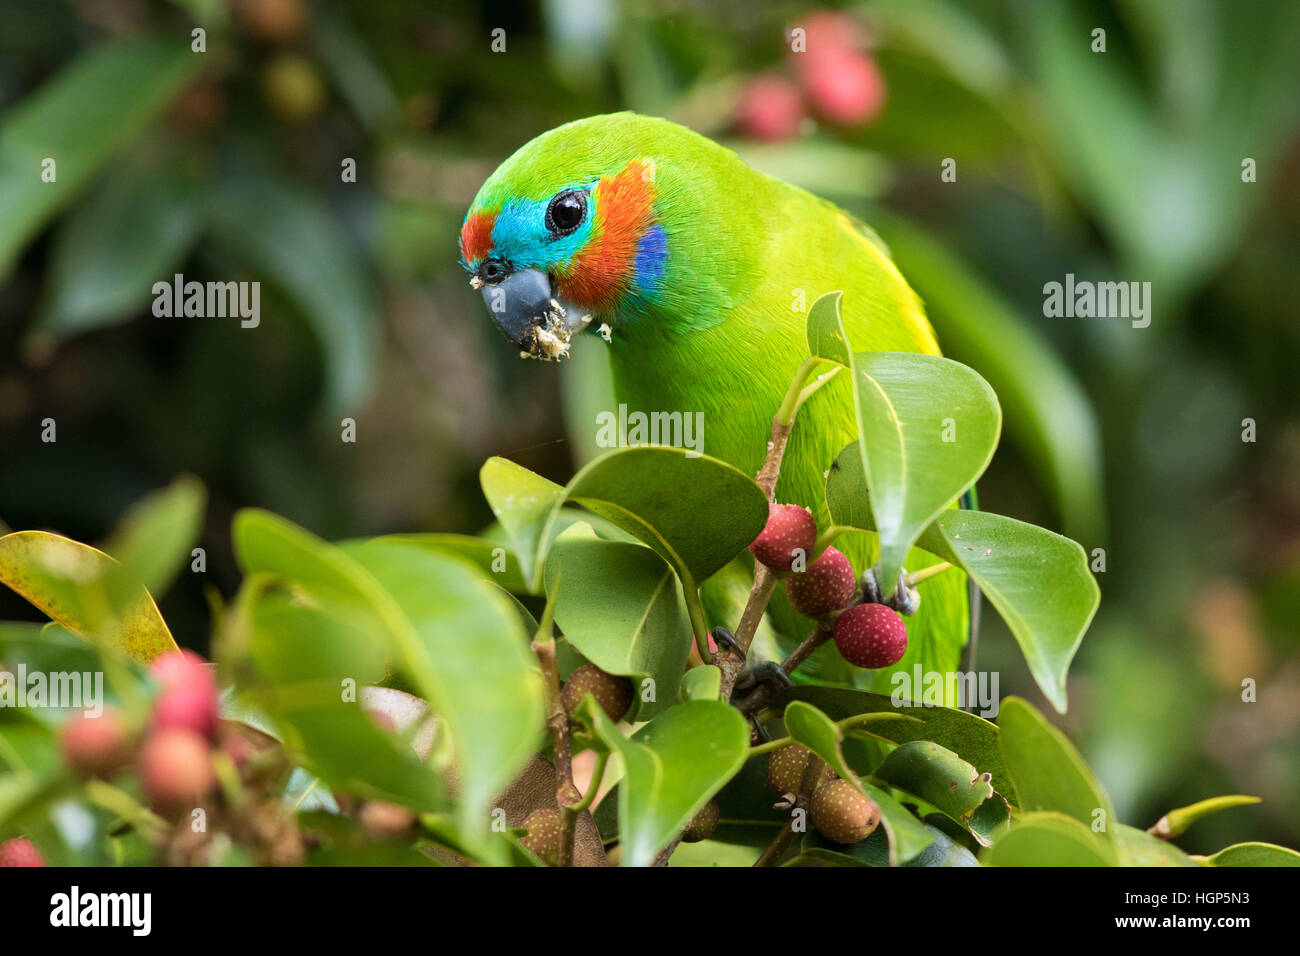 male Double-eyed Fig-parrot (Cyclopsitta diophthalma) eating figs - Stock Image